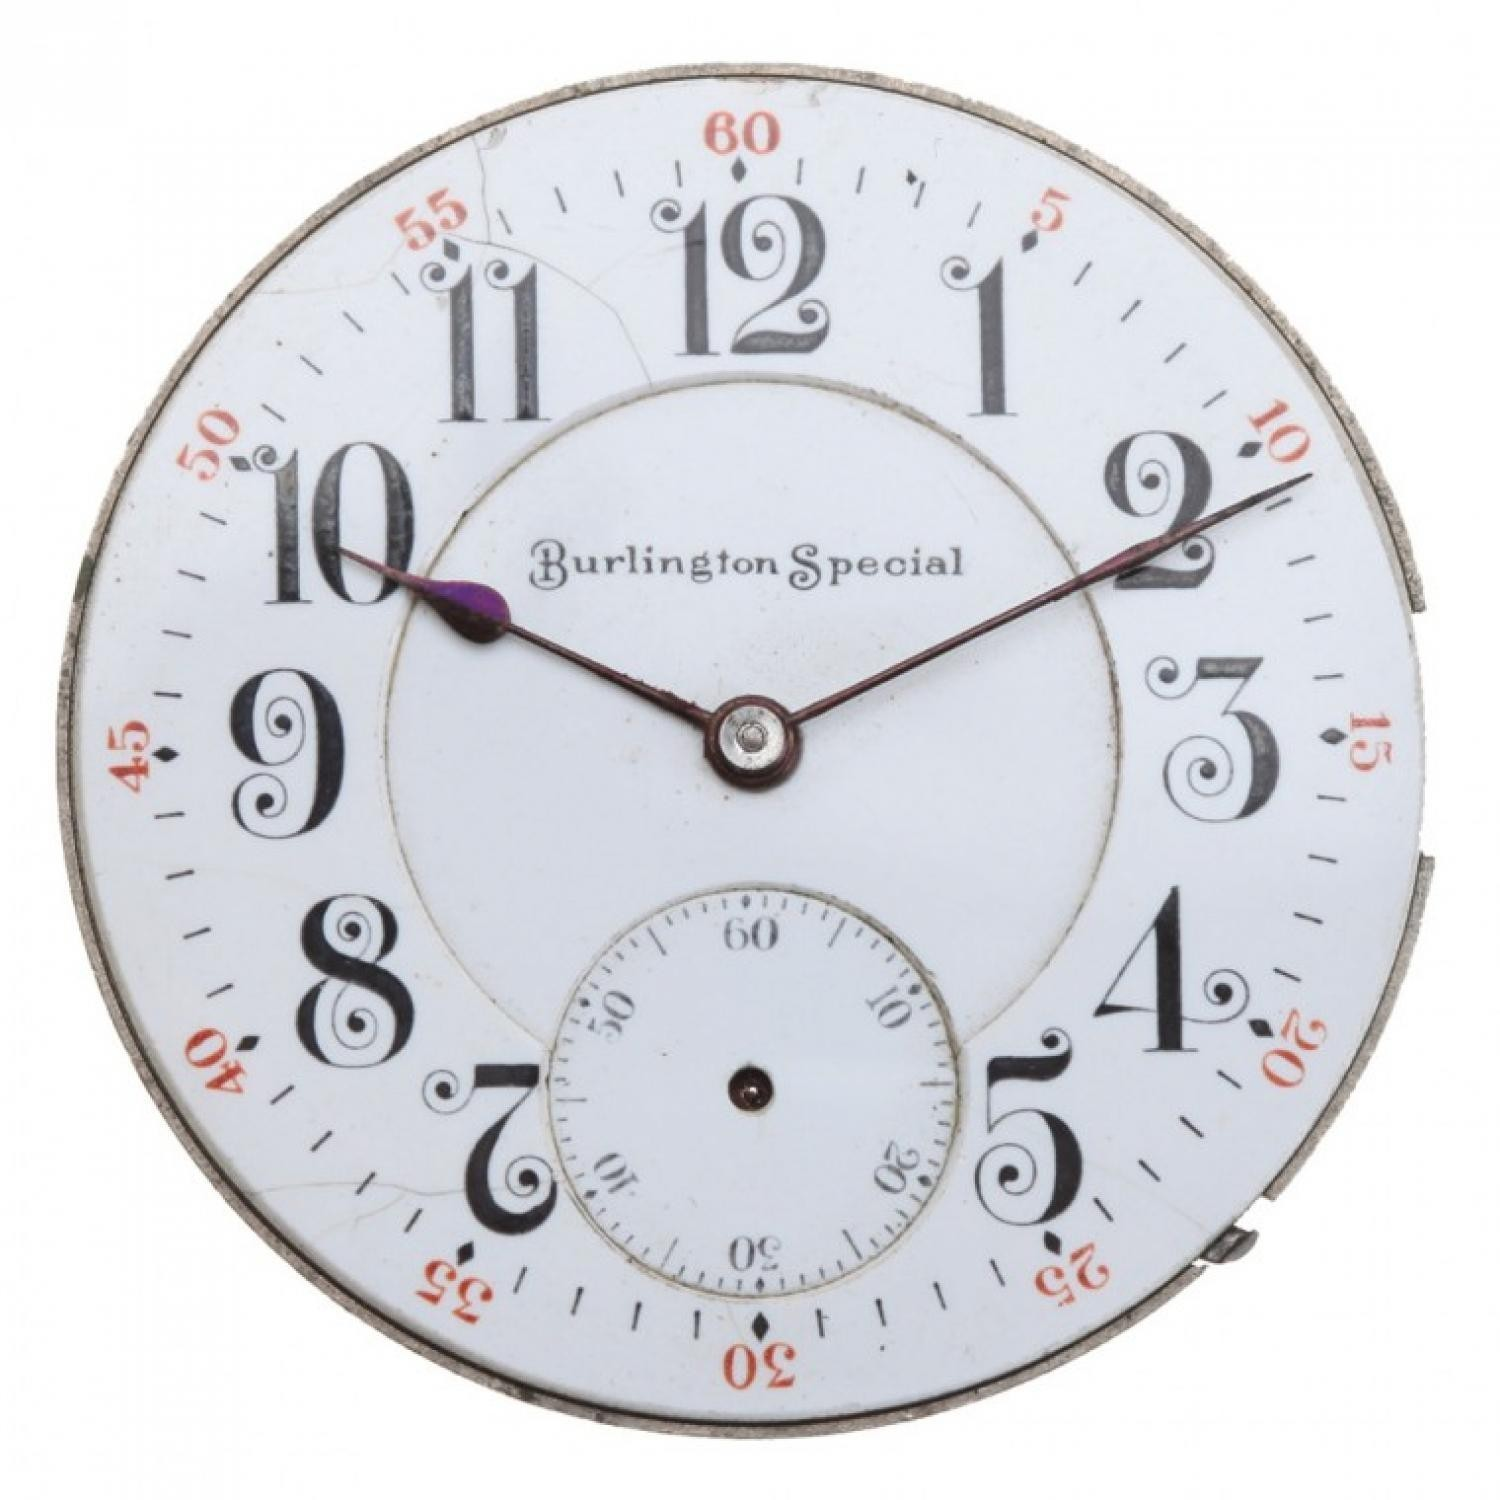 Image of Illinois 185 #2058978 Dial